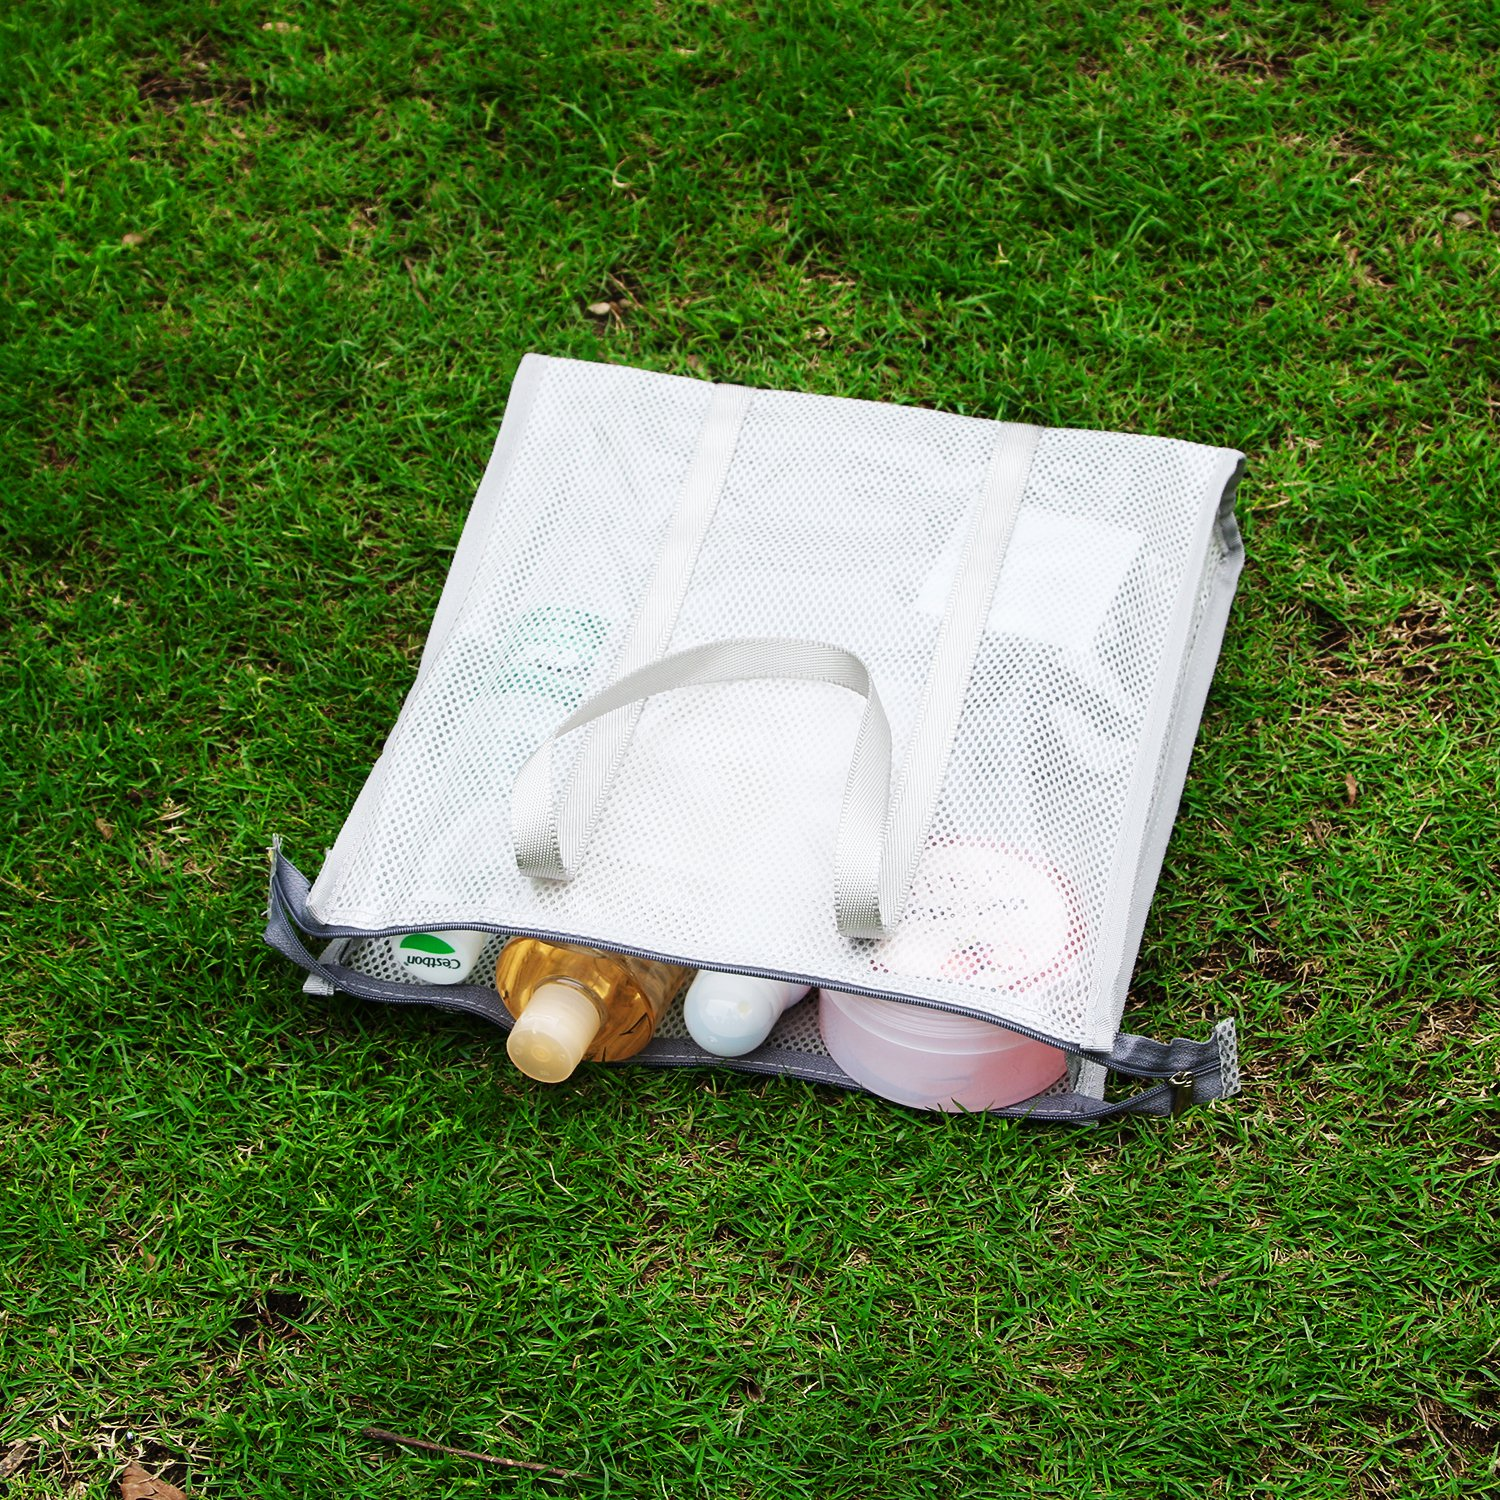 Beach Bag, Clear Beach Handbag with Zipper Closure, Non - Sticky Sand, Perfect for Work, School, Sports Games Concerts and Beach.